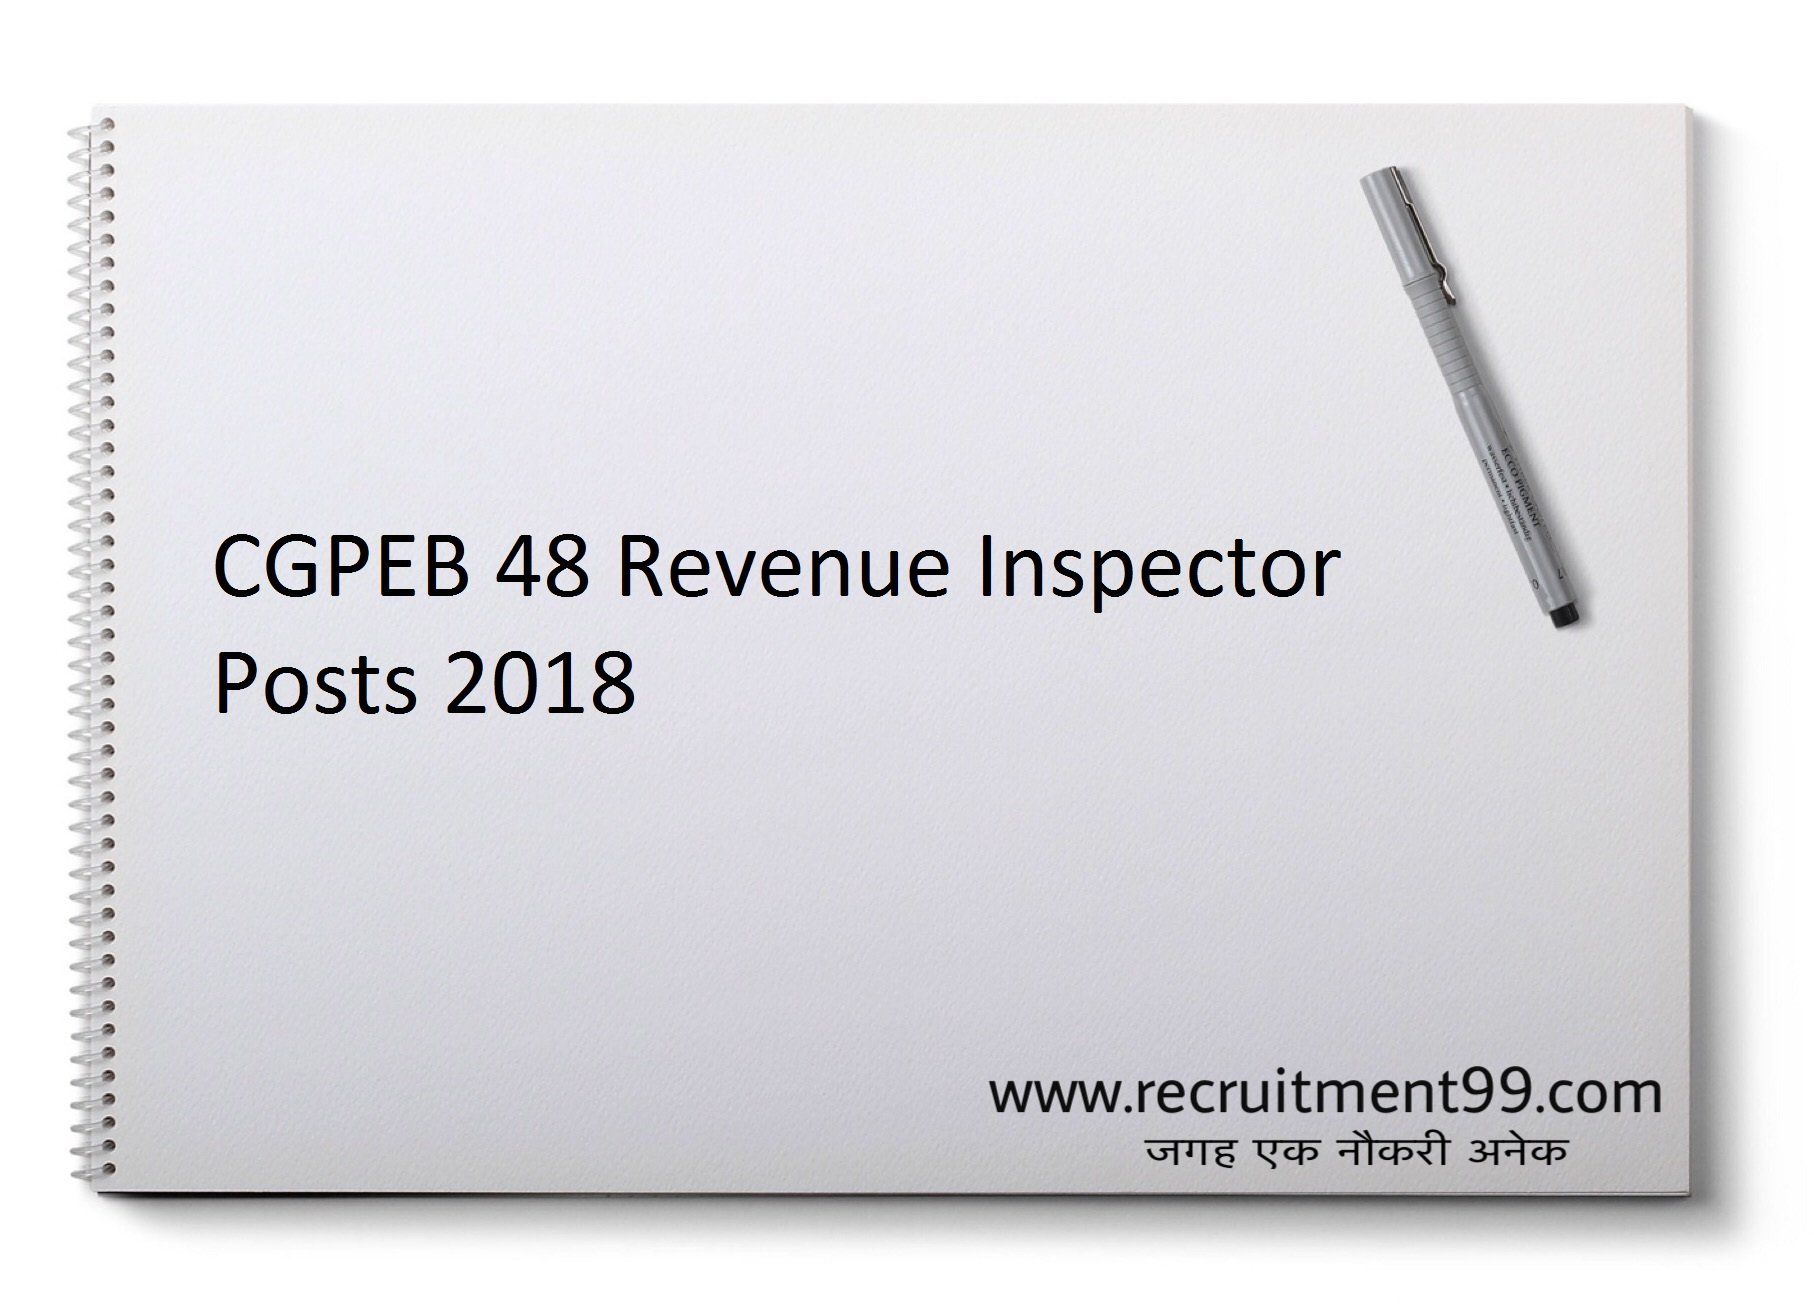 CGPEB Recruitment 2018 - 48 Revenue Inspector Apply online